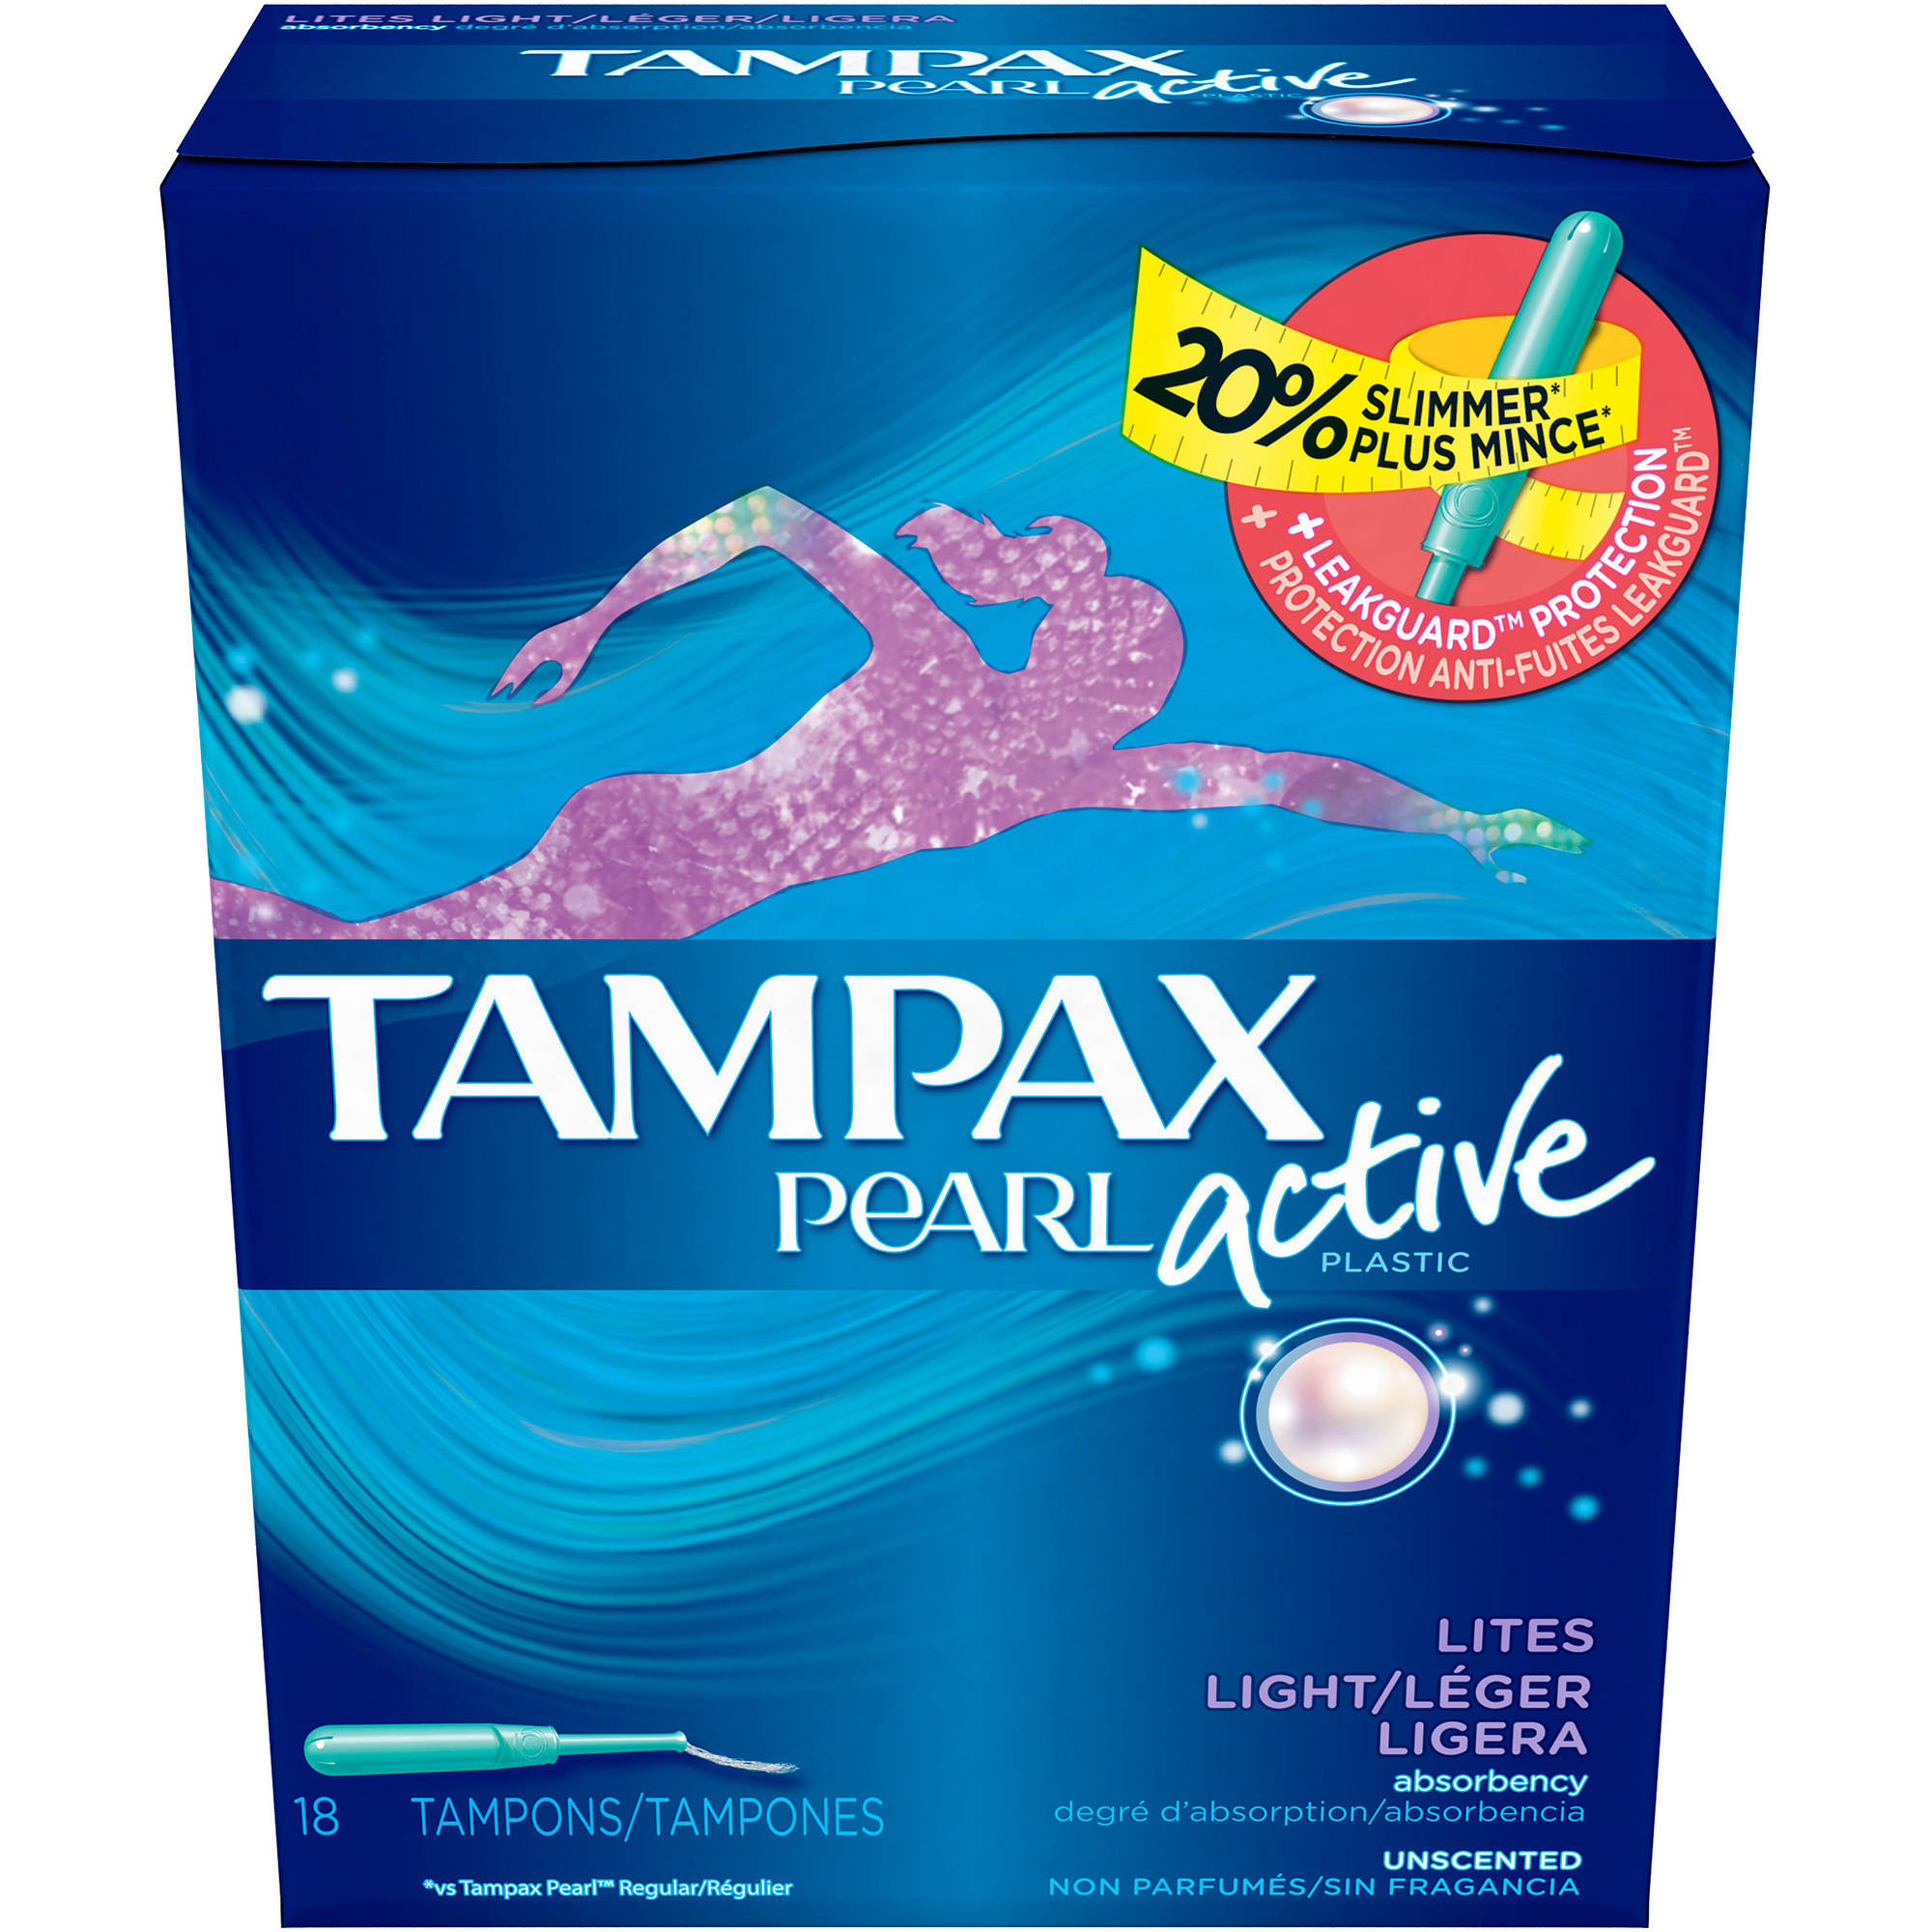 Tampax Pearl Active Unscented Light Absorbency Plastic Tampons, 18 count